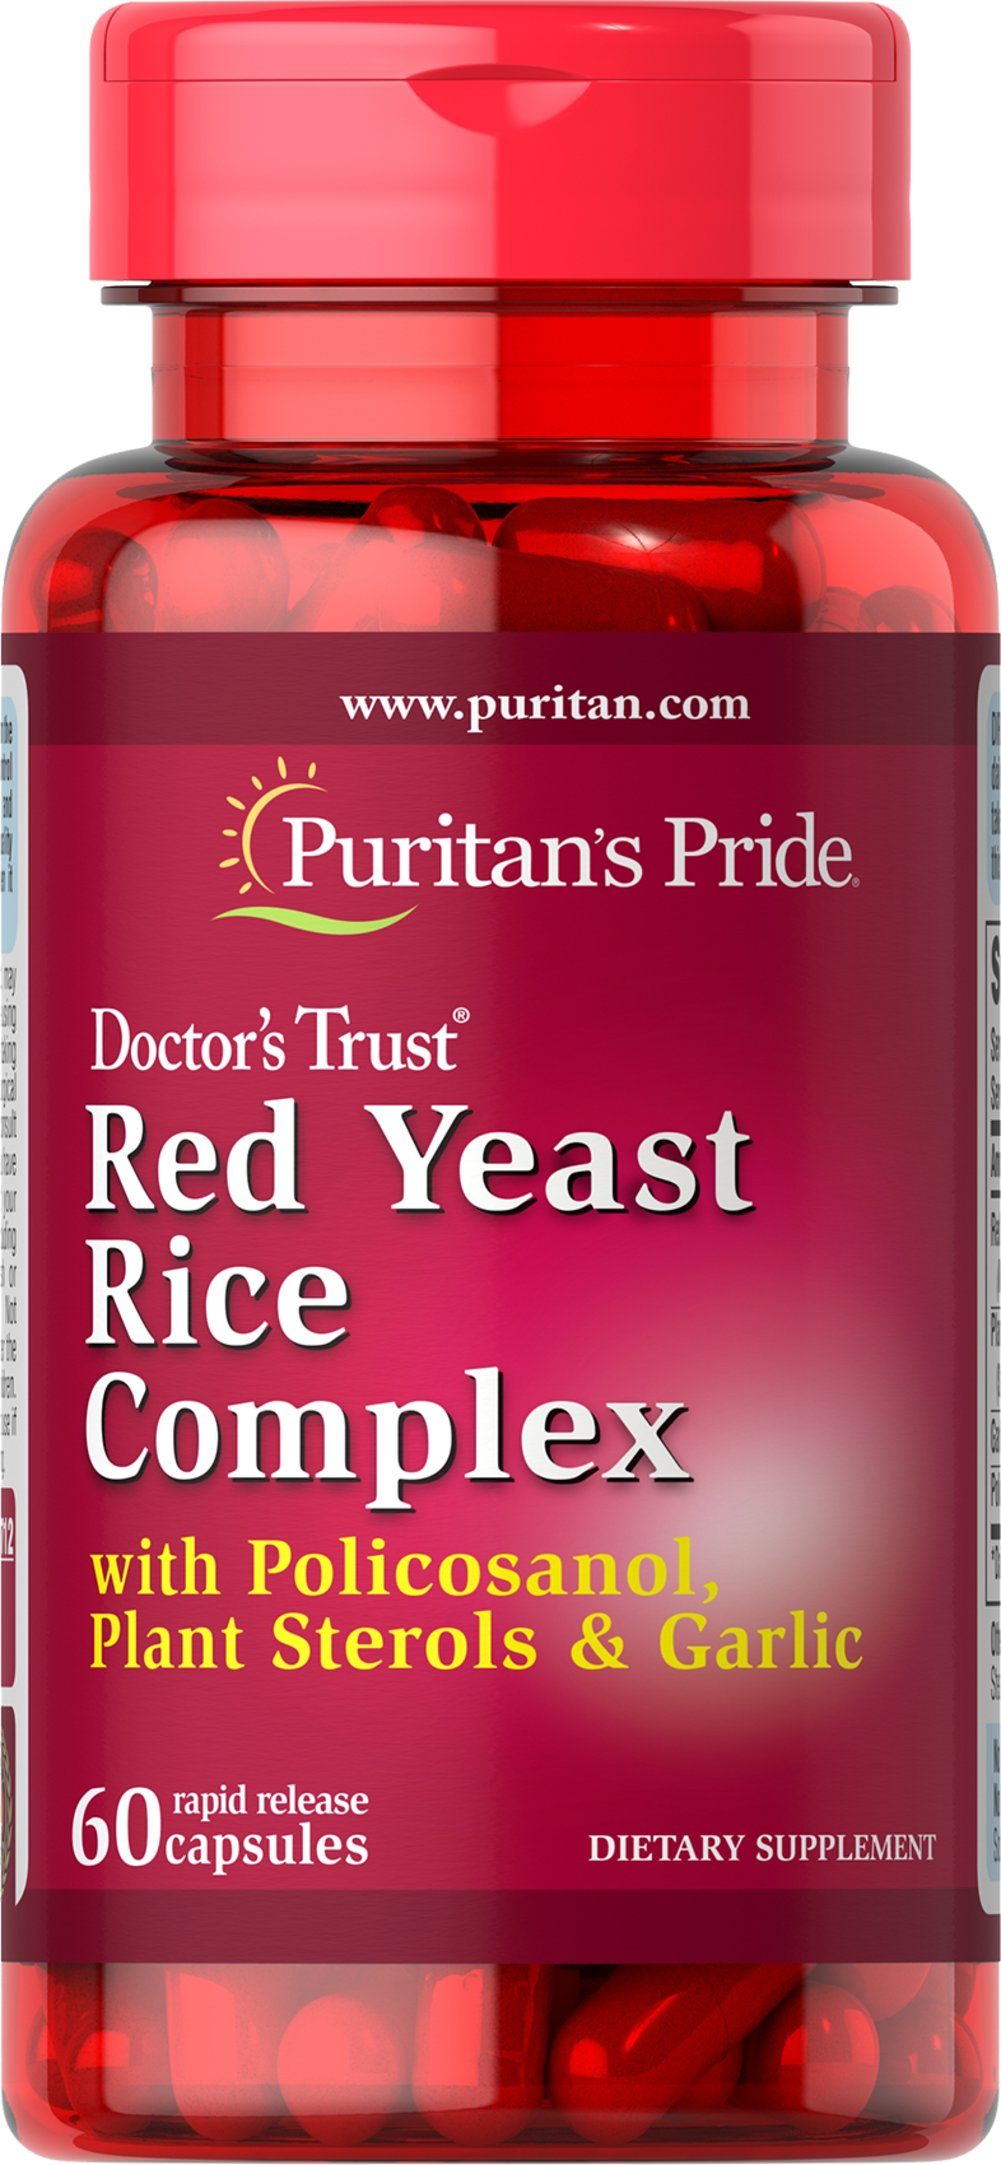 Red Yeast Rice Complex <p>Red Yeast Rice has been a staple food of the traditional Chinese diet for centuries. Valued as a main food source as well as for other uses, Red Yeast Rice can be a healthy addition to your diet.**  Two capsules contain 1200 mg of Red Yeast Rice Powder from the Chinese botanical Monascus purpureus, 500 mg Plant Sterols, 500 mg Garlic and 20 mg Policosanol.</p> 60 Capsules  $29.99